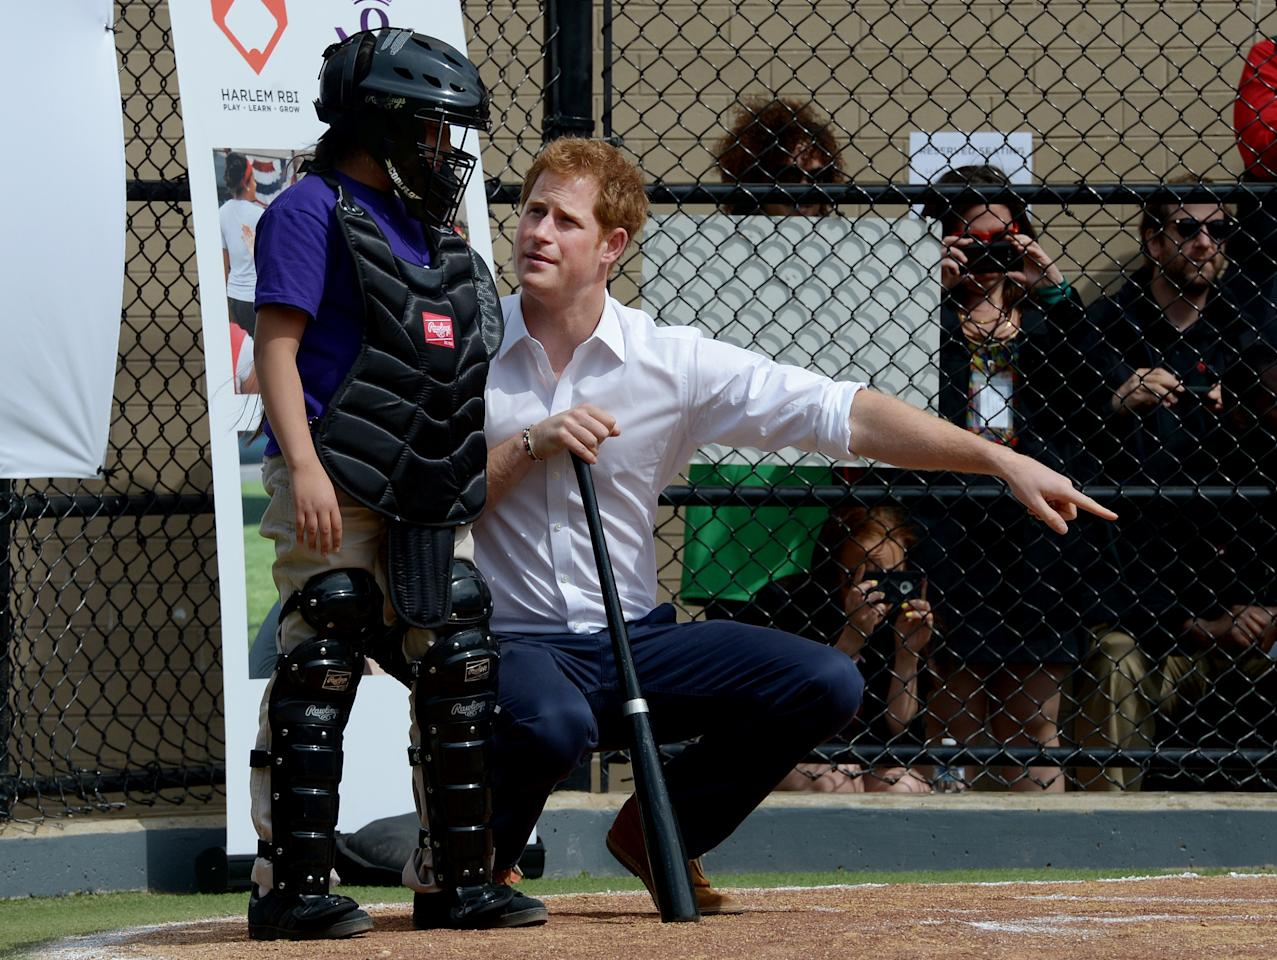 NEW YORK, NY - MAY 14:  HRH Prince Harry (R) talks with  a young player while participating in a baseball clinic during the launch of a new partnership between the Royal Foundation of the Duke and Duchess of Cambridge and Harlem RBI, a local community organization May 14, 2013 in the Harlem neighborhood of New York City. HRH will be undertaking engagements on behalf of charities with which the Prince is closely associated on behalf also of HM Government, with a central theme of supporting injured service personnel from the UK and US forces.  (Photo by Justin Lane - Pool/Getty Images)